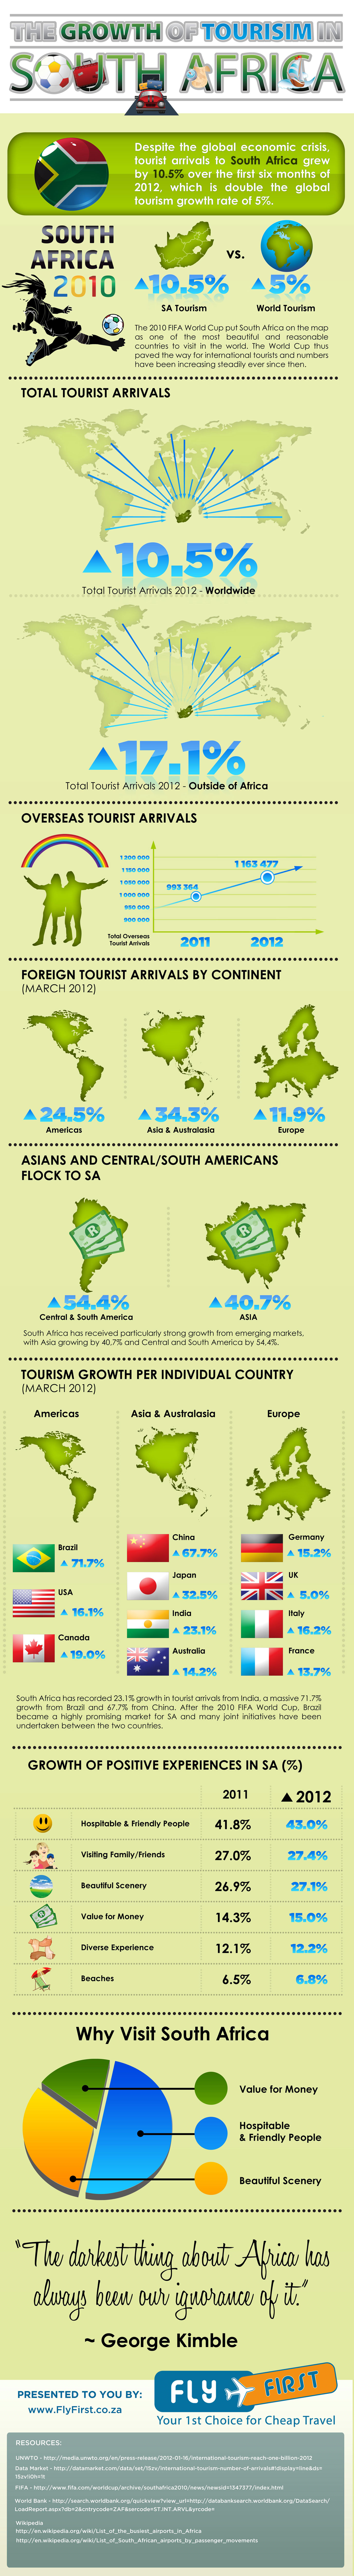 South African Tourism Industry-Infographic